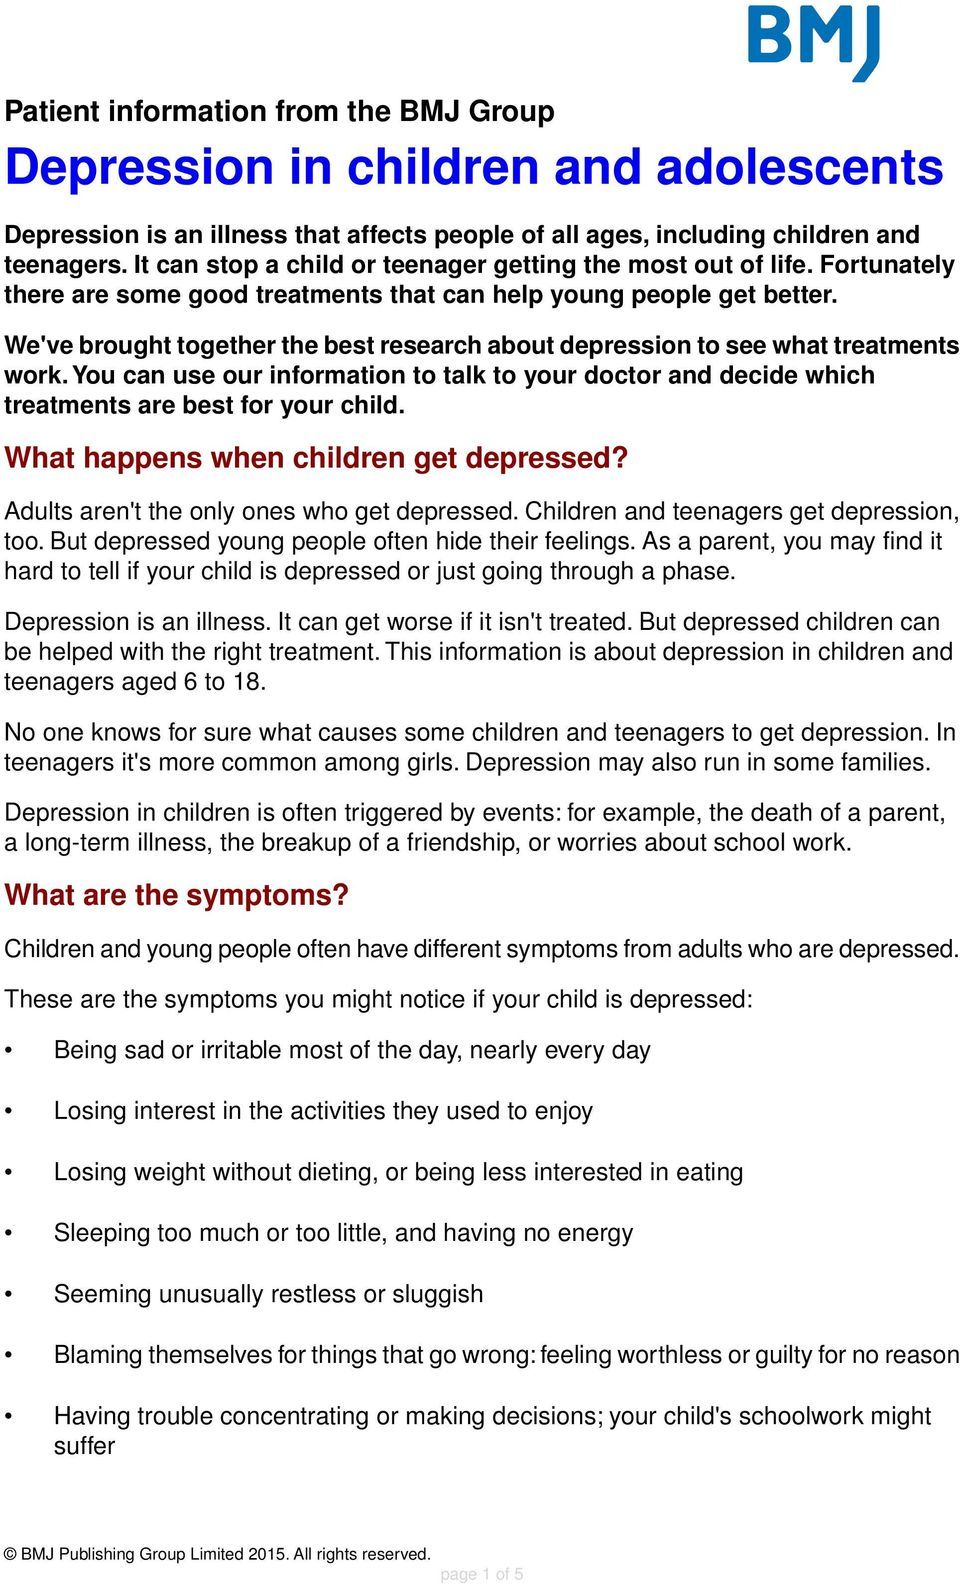 We've brought together the best research about depression to see what treatments work.you can use our information to talk to your doctor and decide which treatments are best for your child.